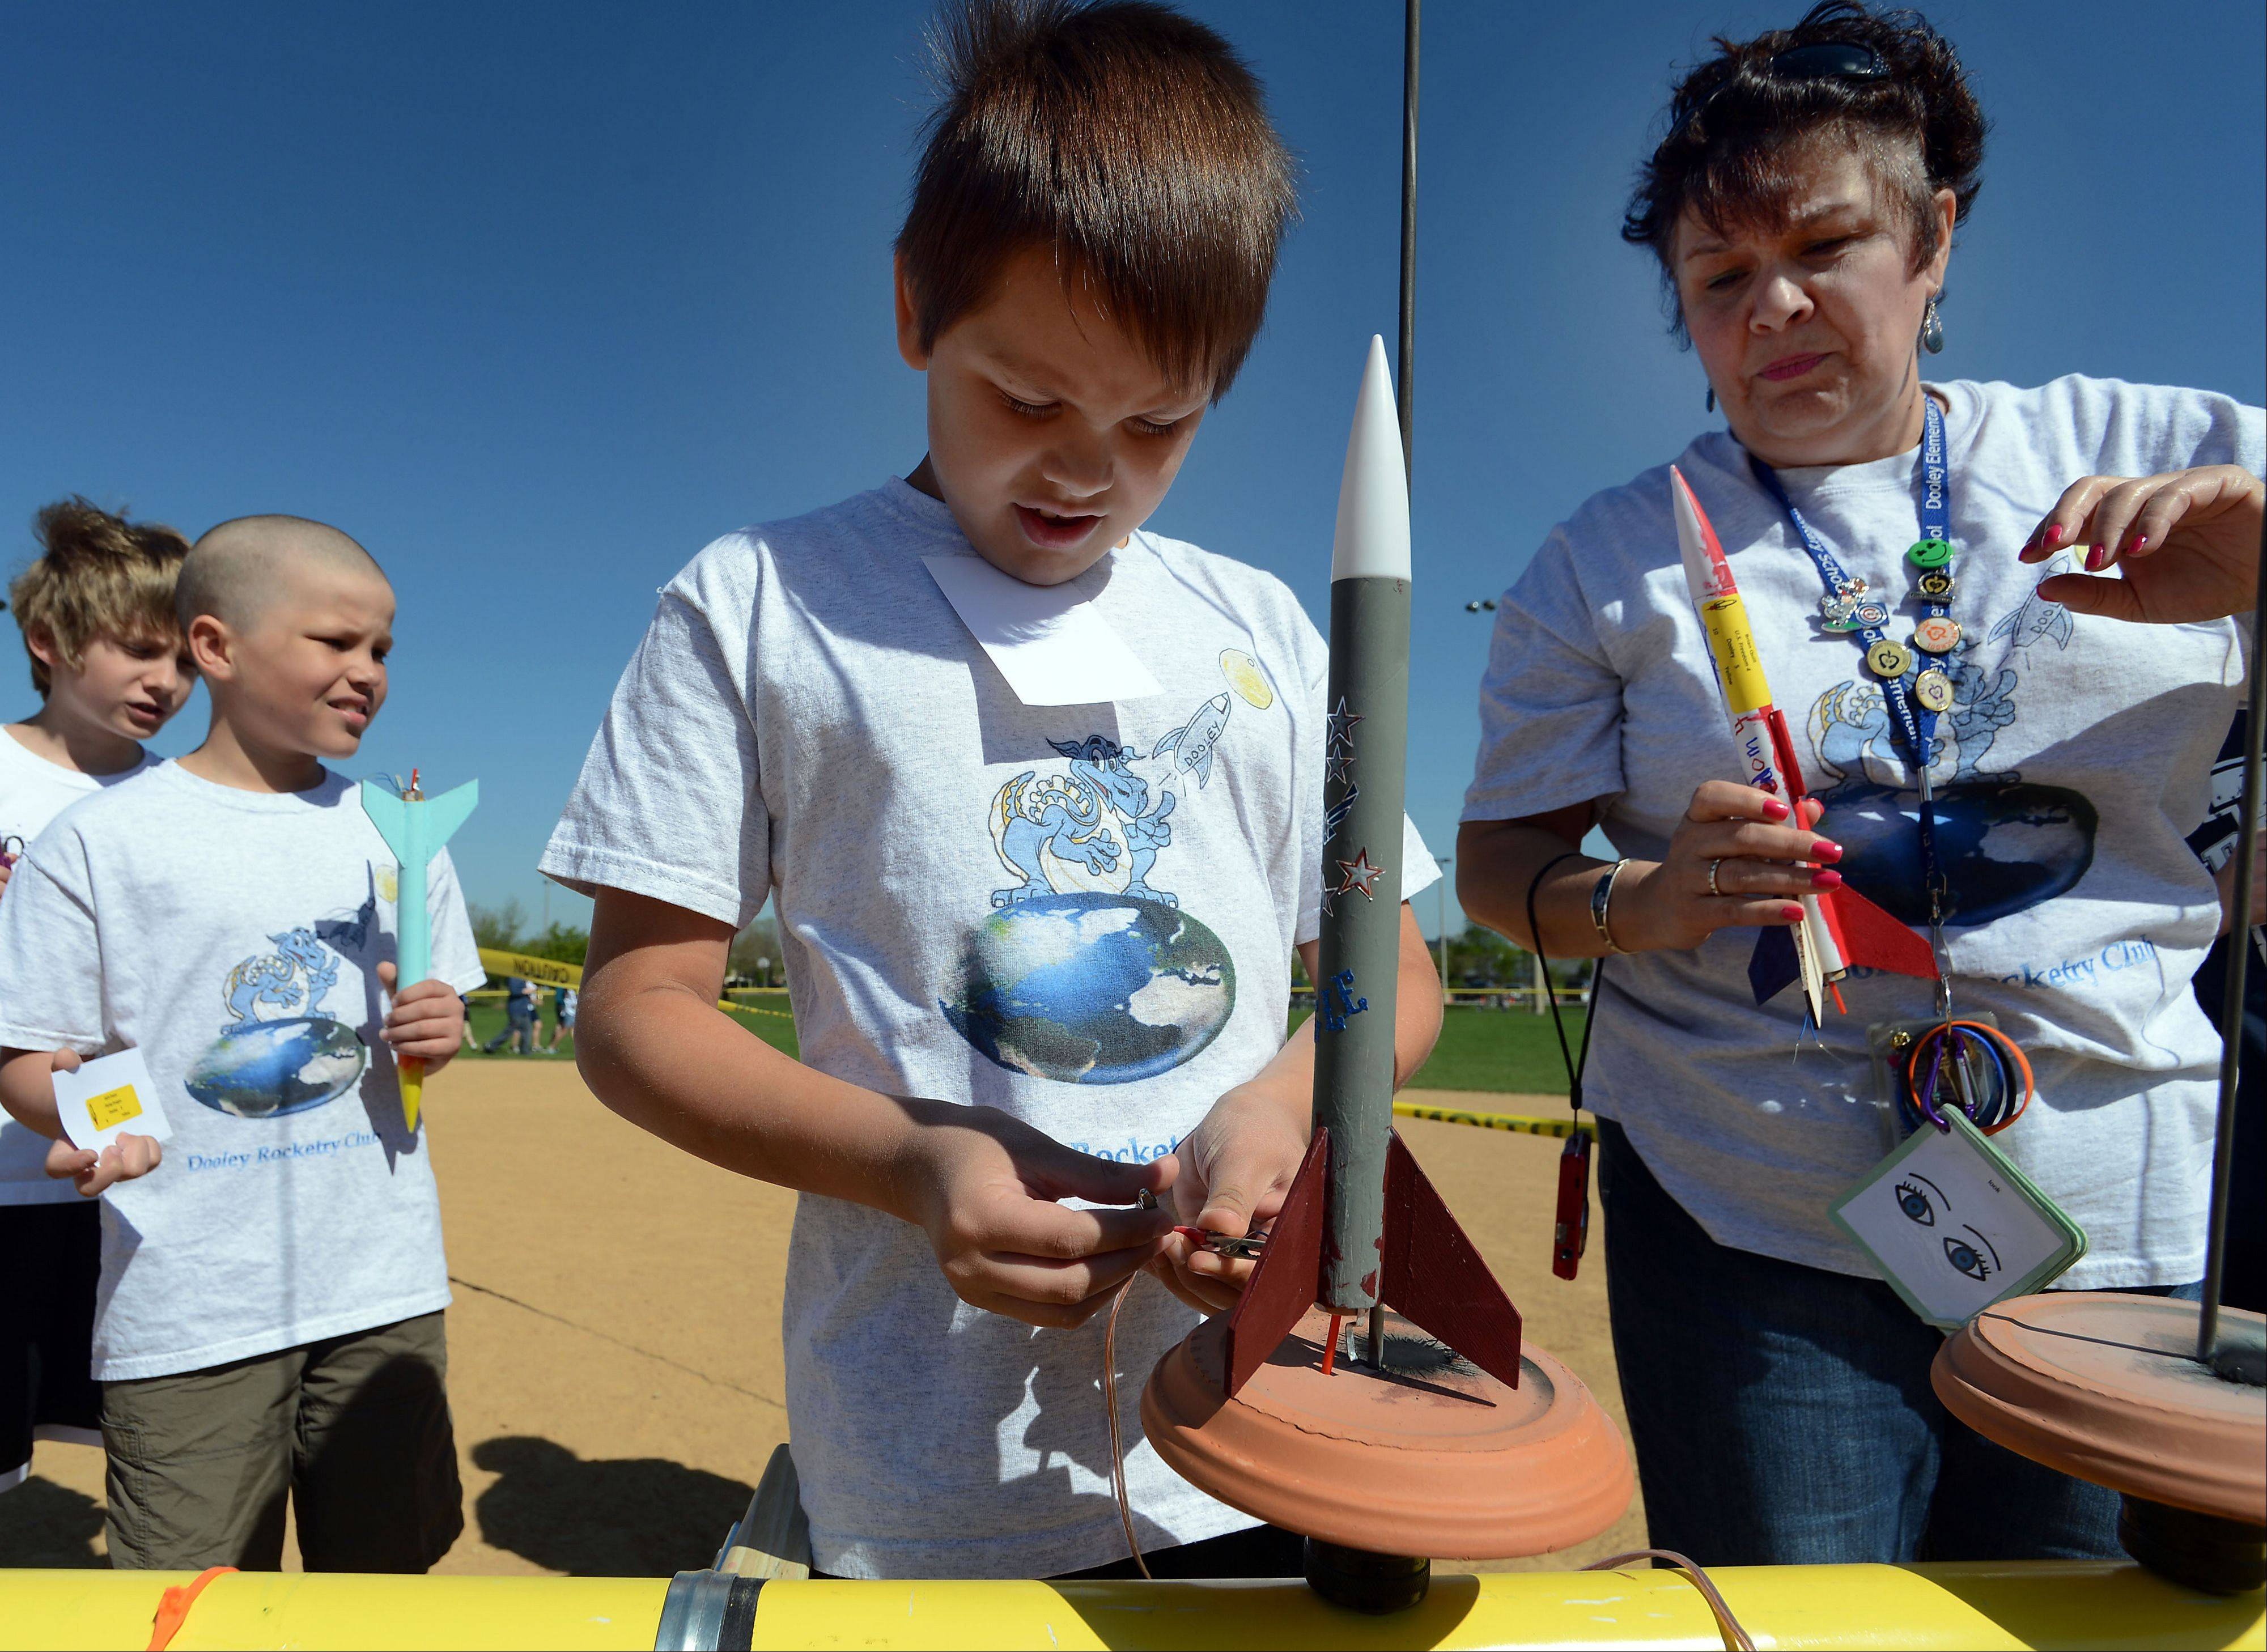 Donald McCormick, 10, a fourth grader at Thomas Dooley Elementary School in Schaumburg, hooks up his rocket called the Red Eagle at Olympic Park in Schaumburg Tuesday. His was one of 450 rockets that took to the sky as part of Schaumburg Township Elementary District 54's rocket launch day. Next to him is Joann Delmedico, who was the rocketeer club facilitator on site.